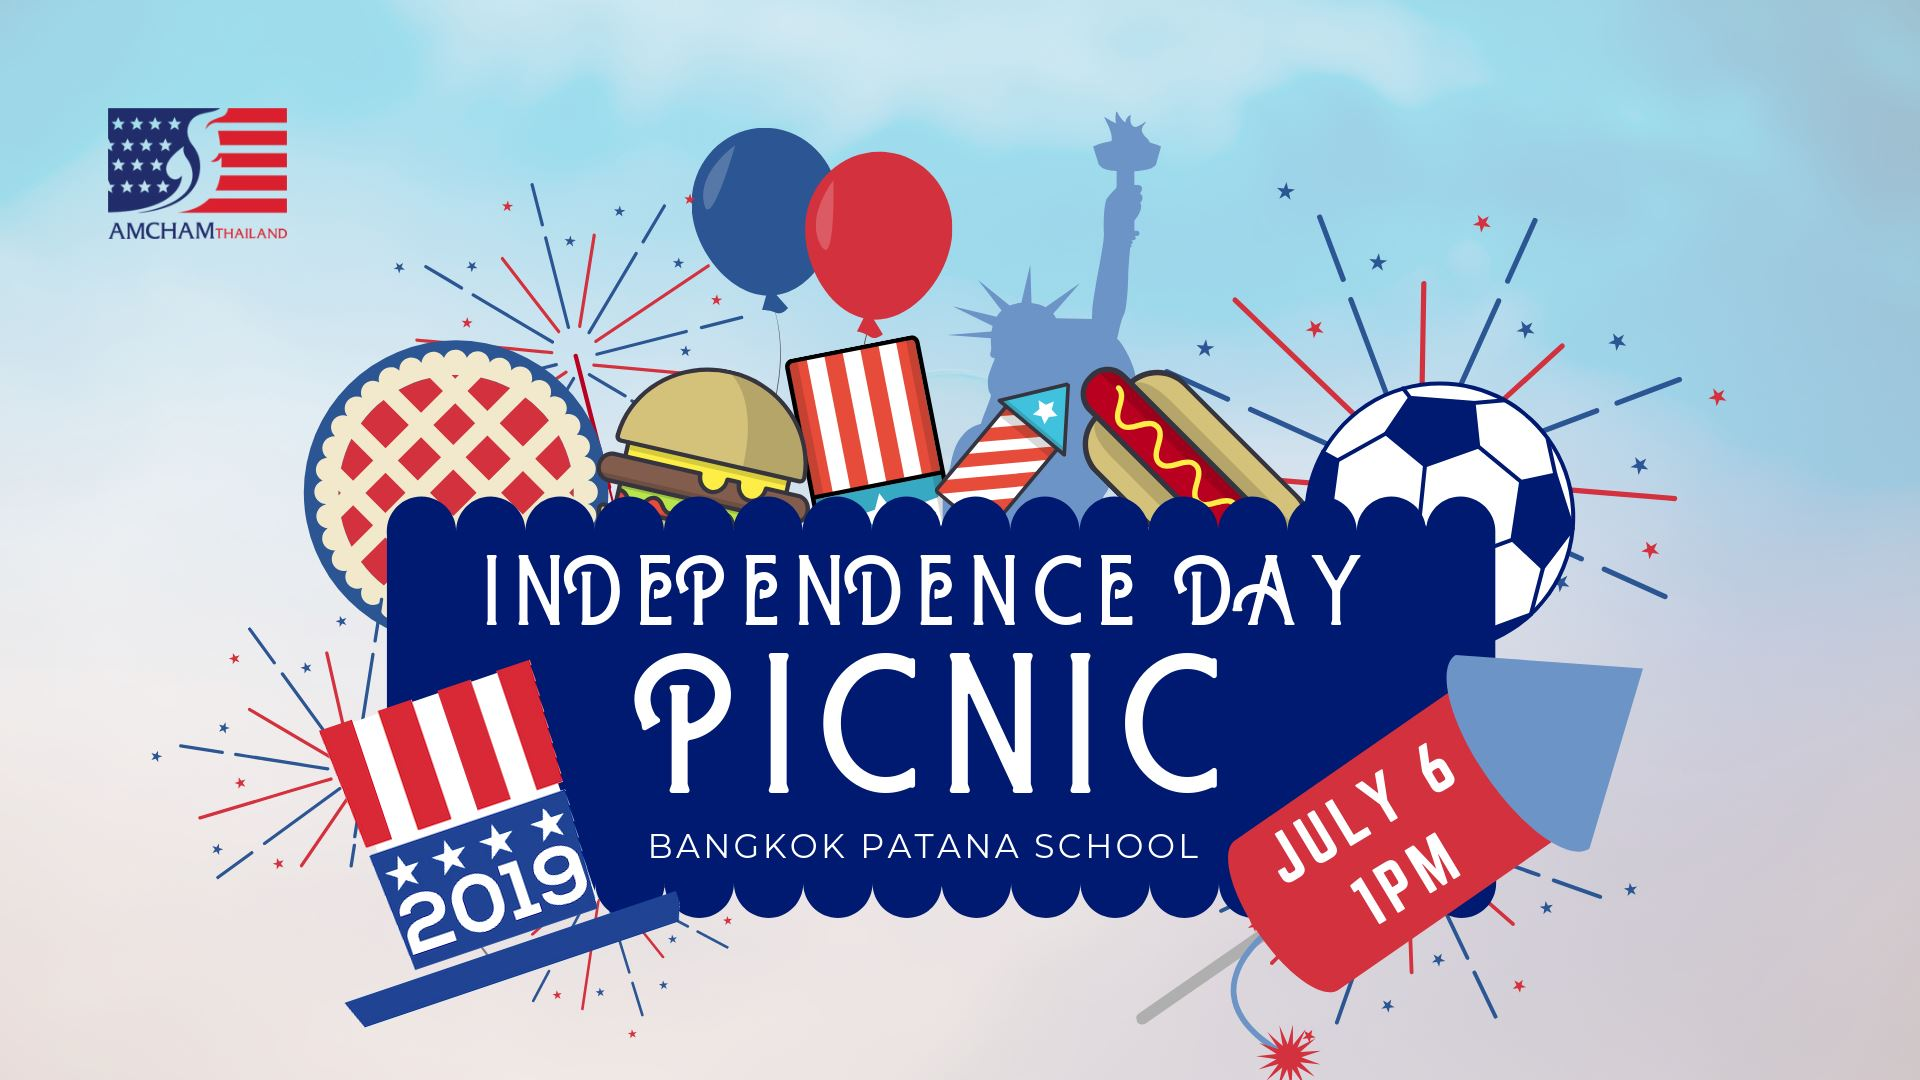 independence day bangkok patana school